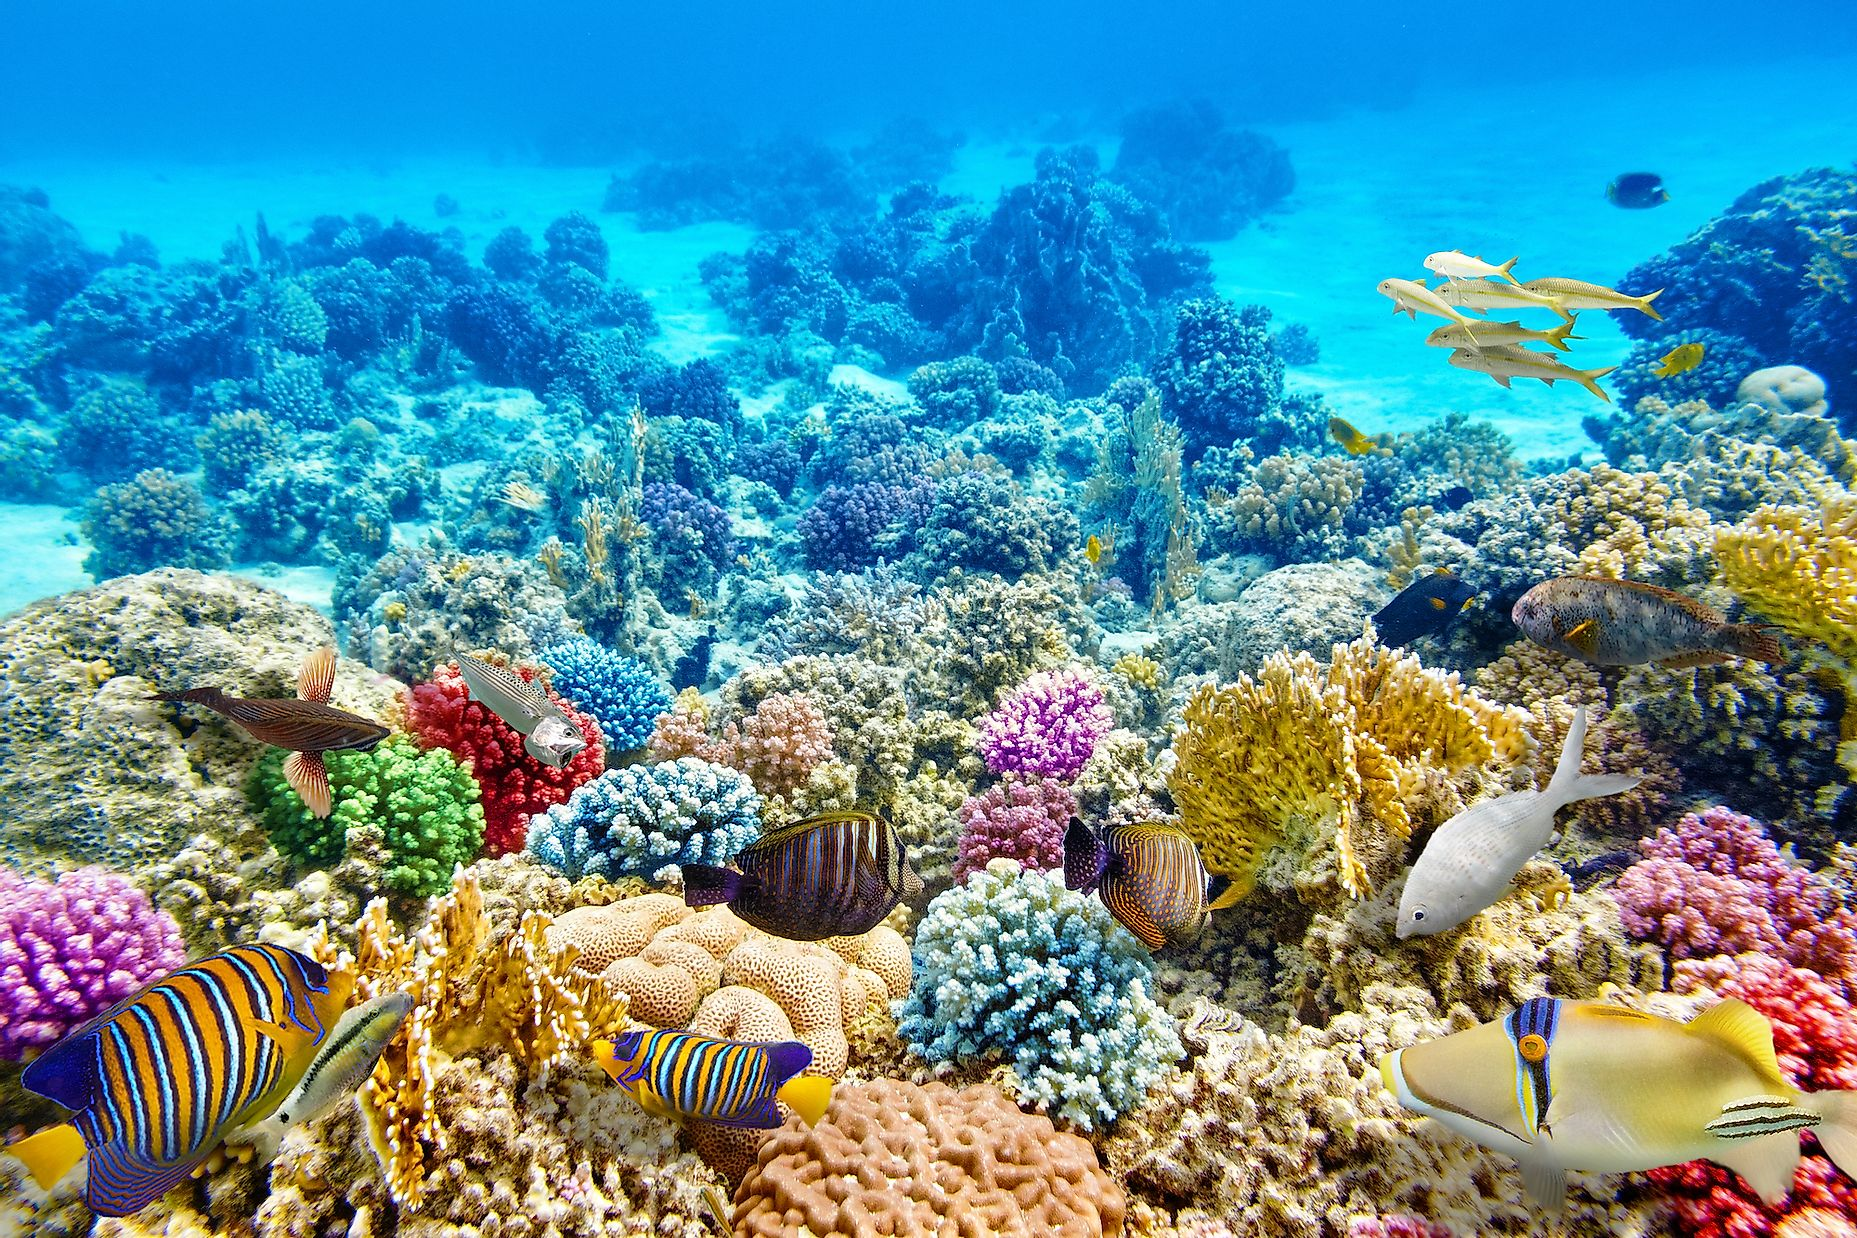 Why are Coral Reefs Important to the Ecosystem?